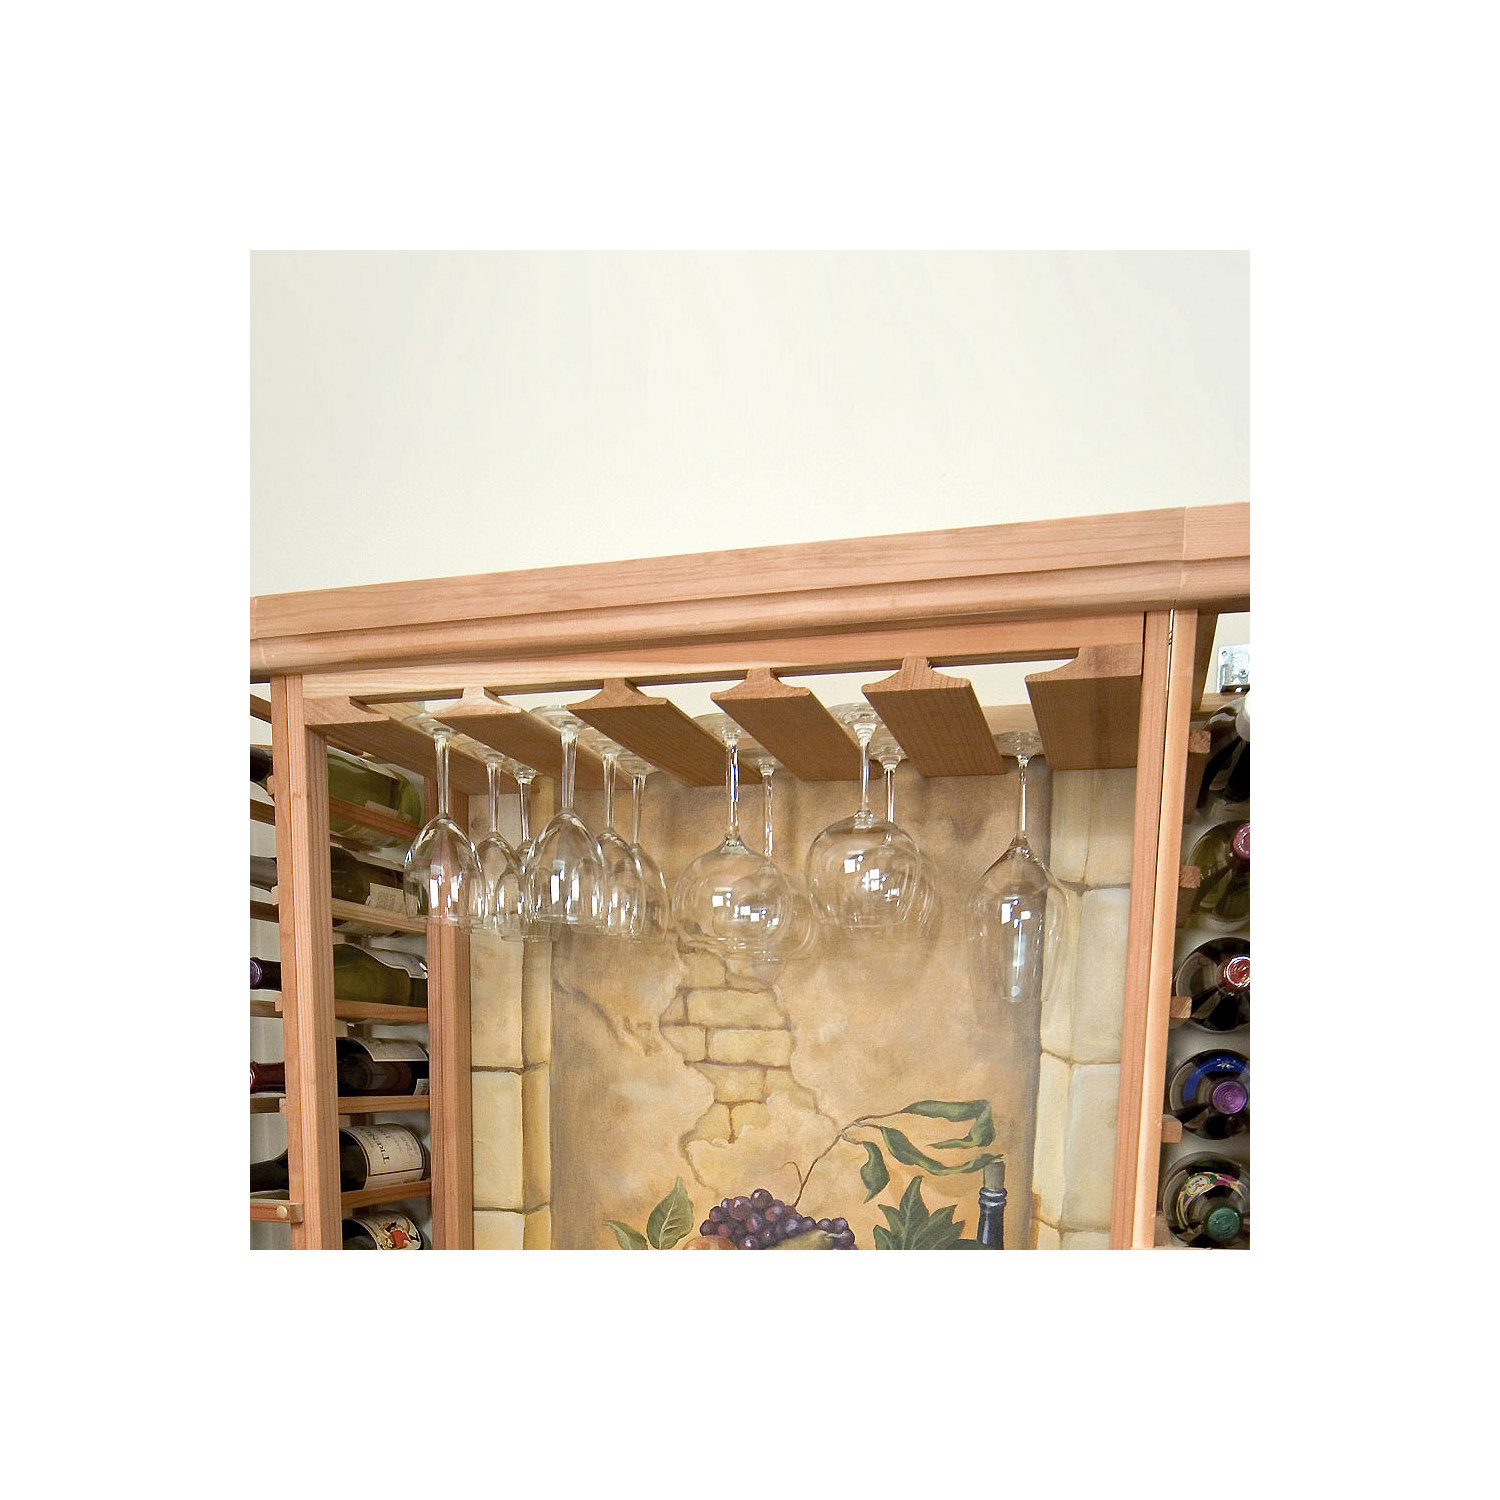 hand noblebrothers noble crafted diy by furniture rack made wine brothers glass custom